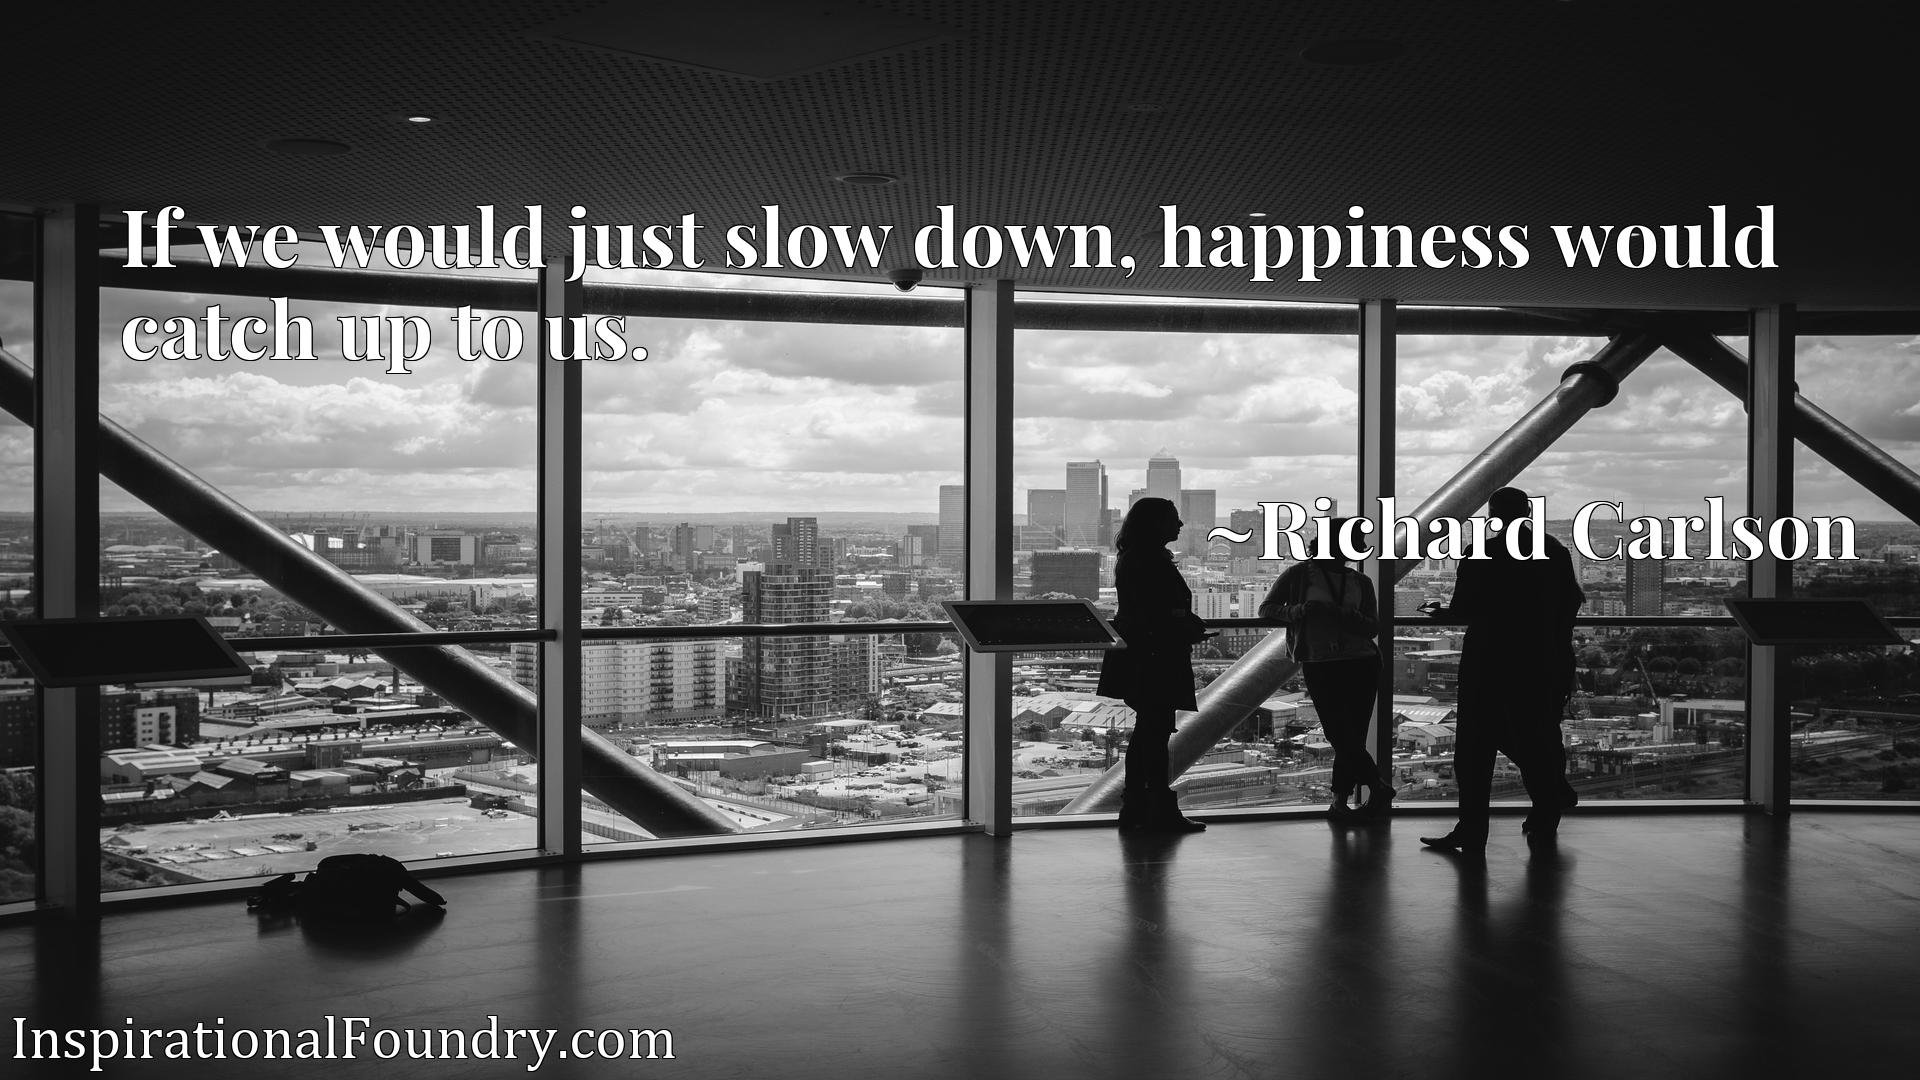 If we would just slow down, happiness would catch up to us.